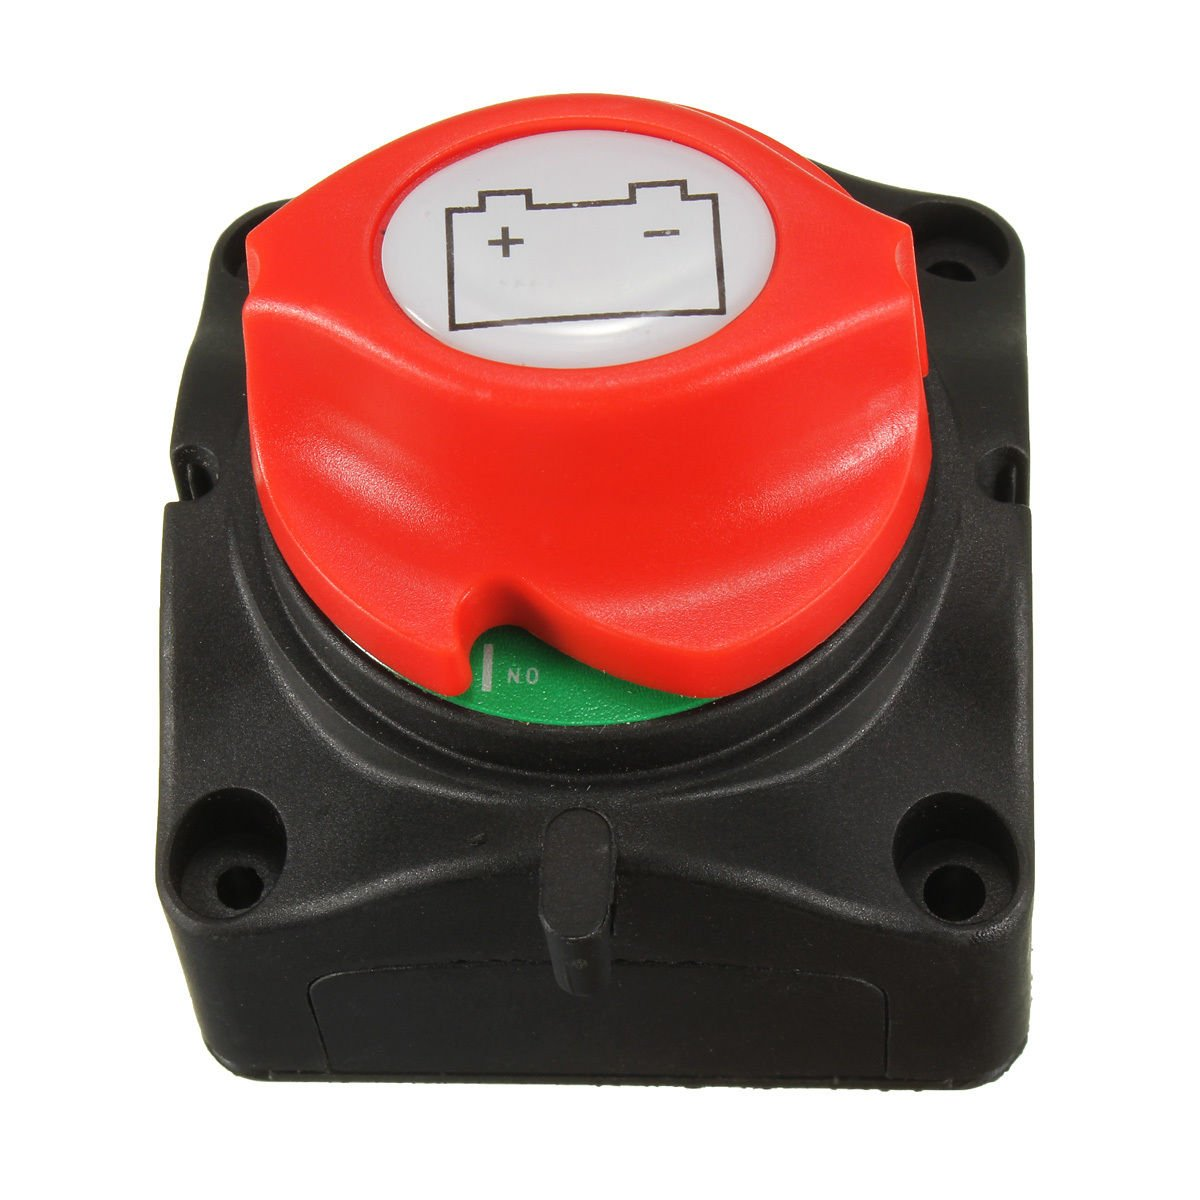 Cheap Isolator Switch 12v 24v Find Deals On 12 Volt 25 Amp Off Metal Toggle Automotive Wiring Get Quotations Nuzamas Marine Removable Battery Cut Power For Car